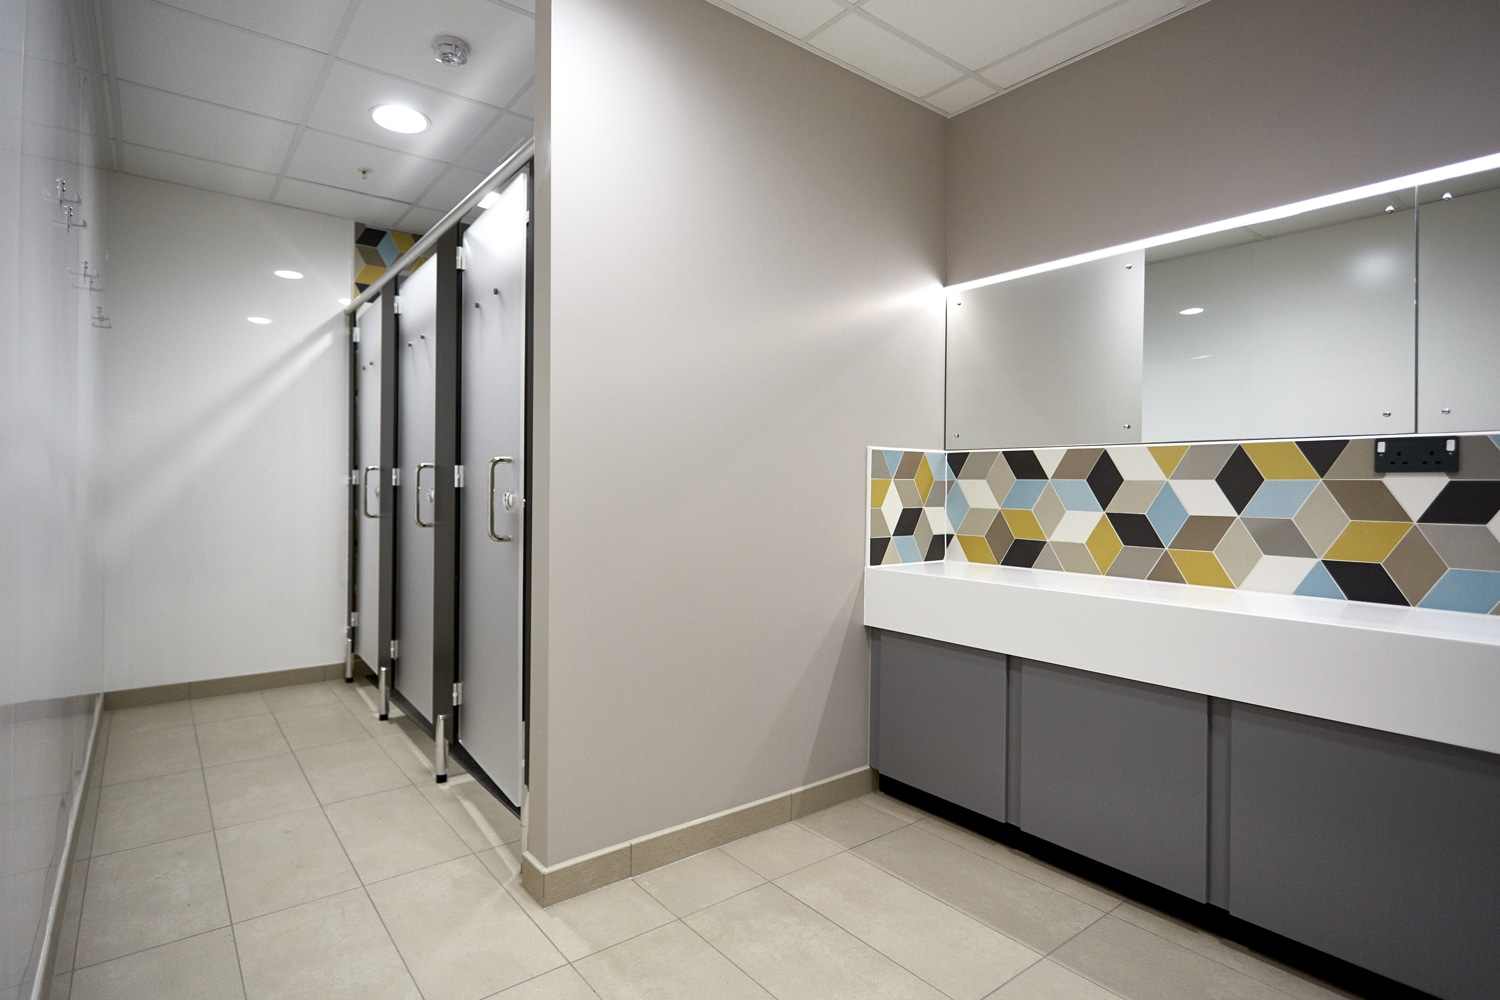 New washrooms for Global Food Producer